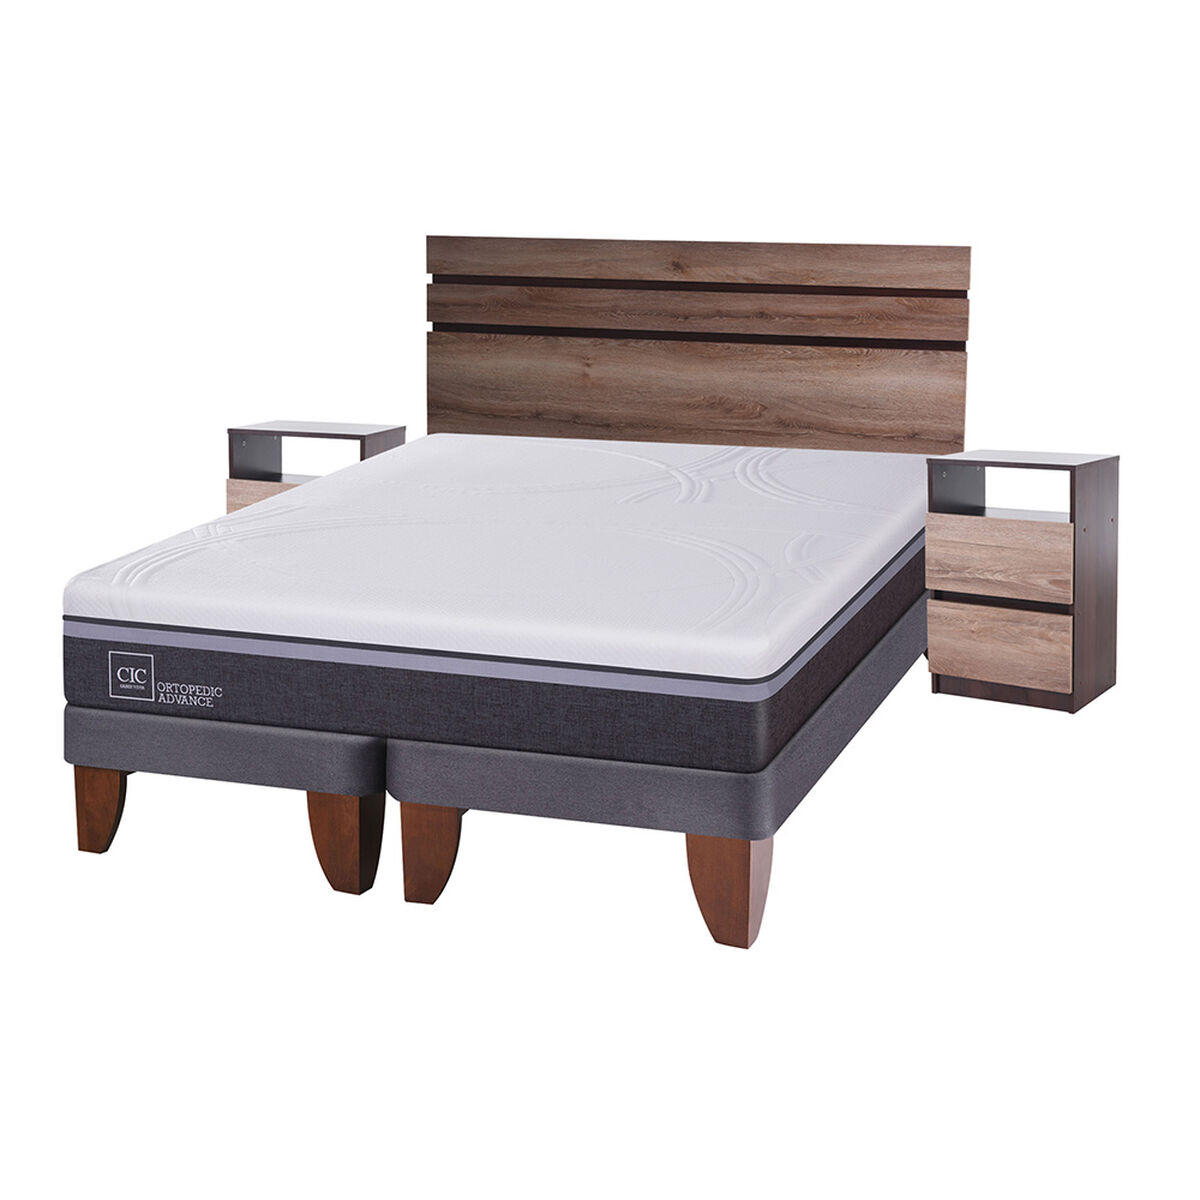 Cama Europea King Div Ortopedic Advance + Set Maderas Ares